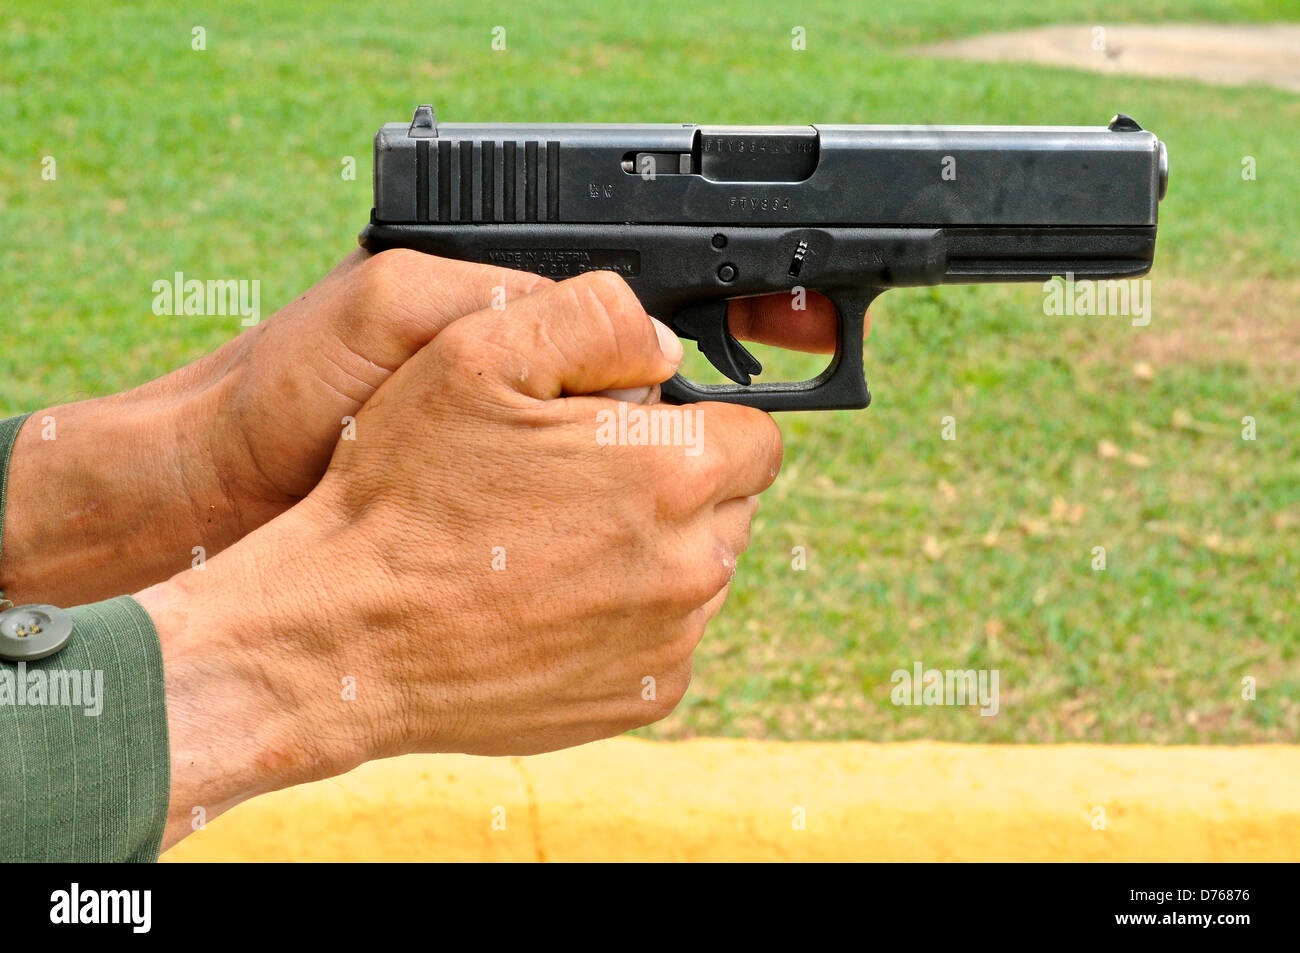 Uniformed police officer aiming pistol tactical firearms